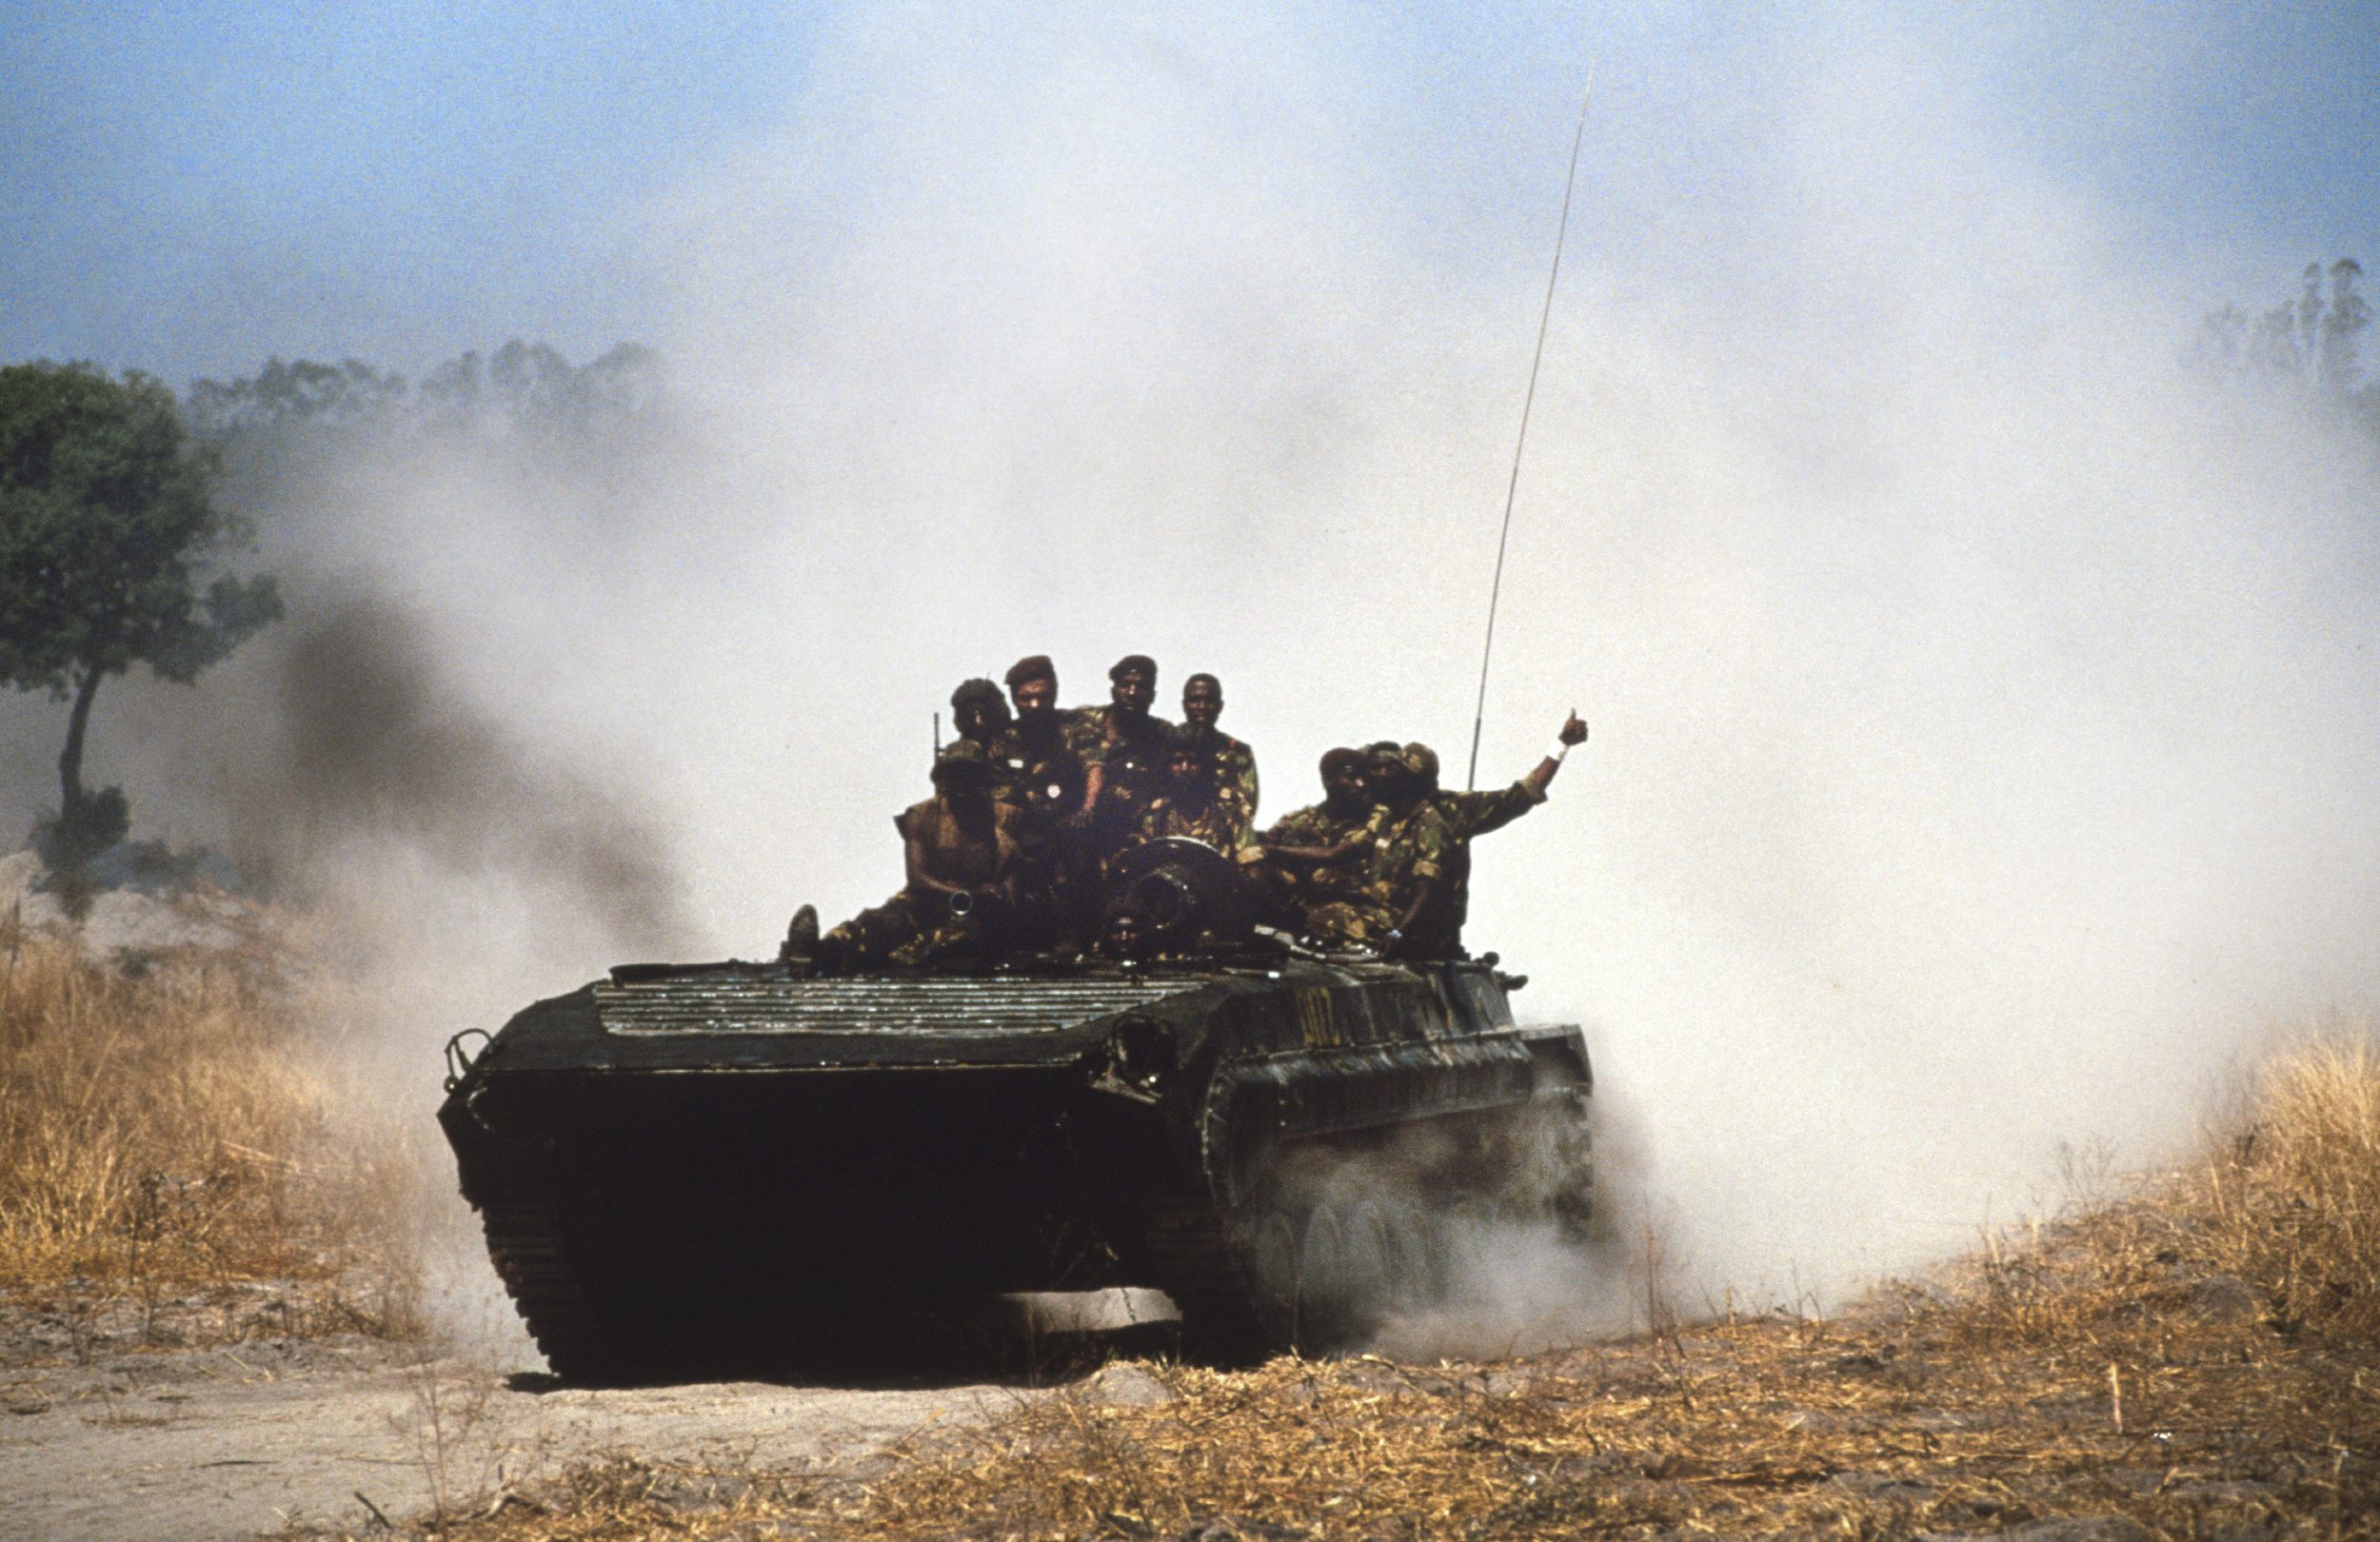 A tank and crew returning from the frontline during Angola's brutal civil war. Quito, Angola, 1993